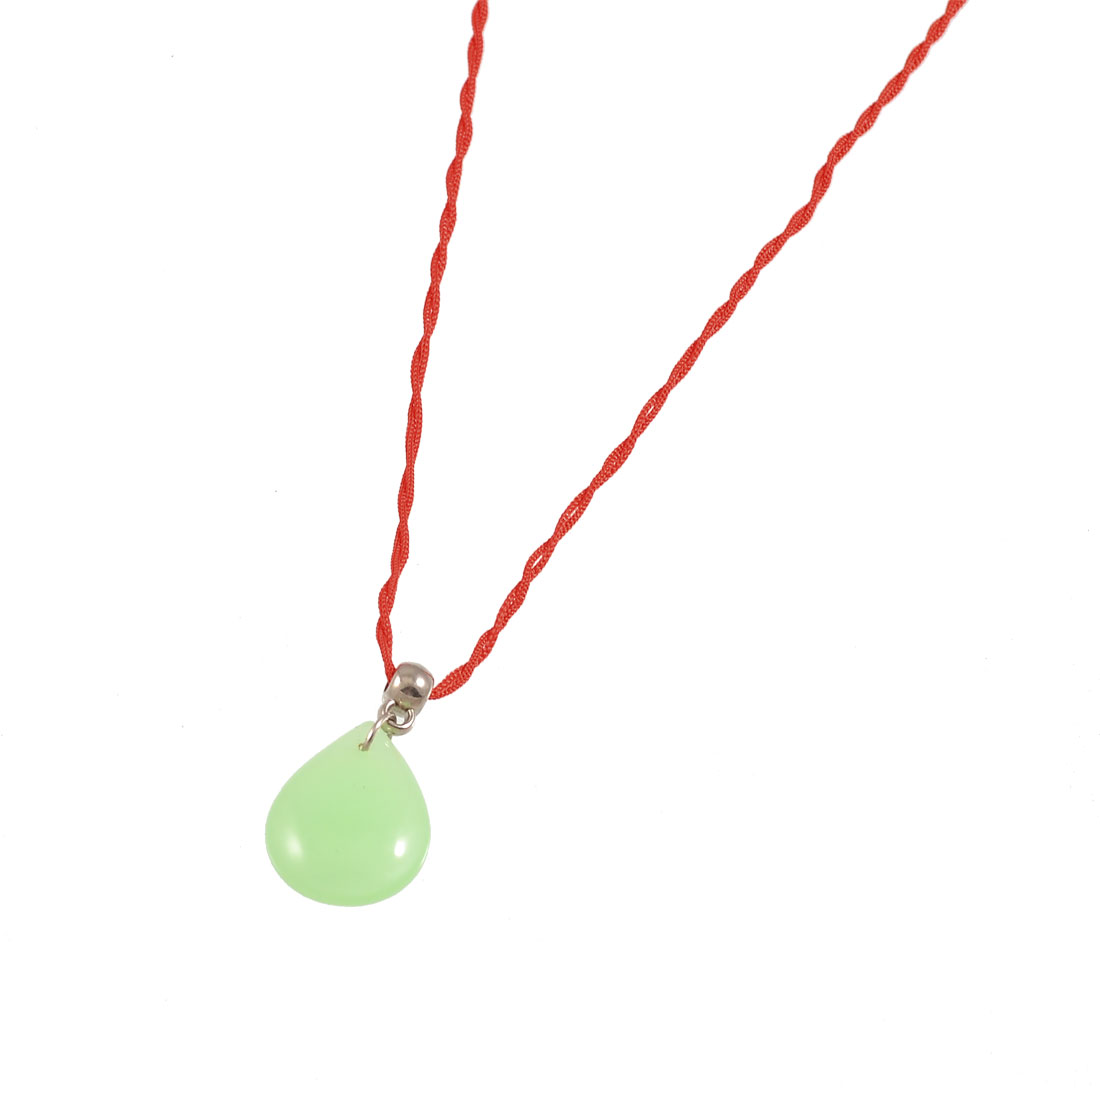 Woman Red Braided Rope Green Raindrop Crystal Pendant Necklace